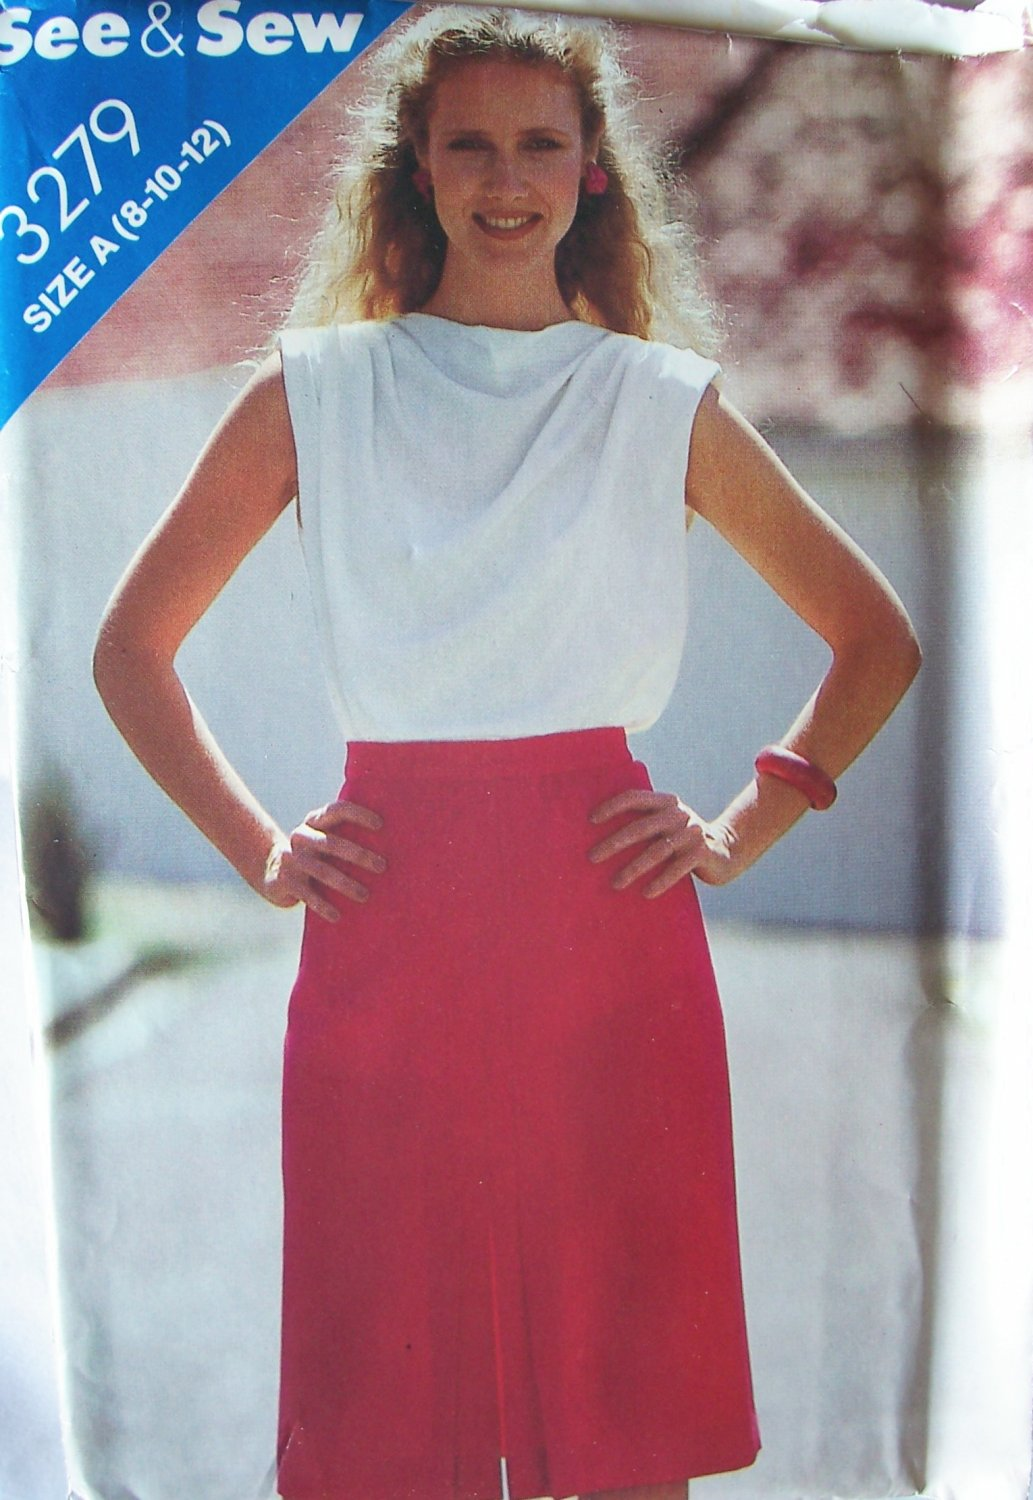 Vintage 70s Butterick 3279 See and Sew Straight Skirt Pattern Uncut Size 8-12